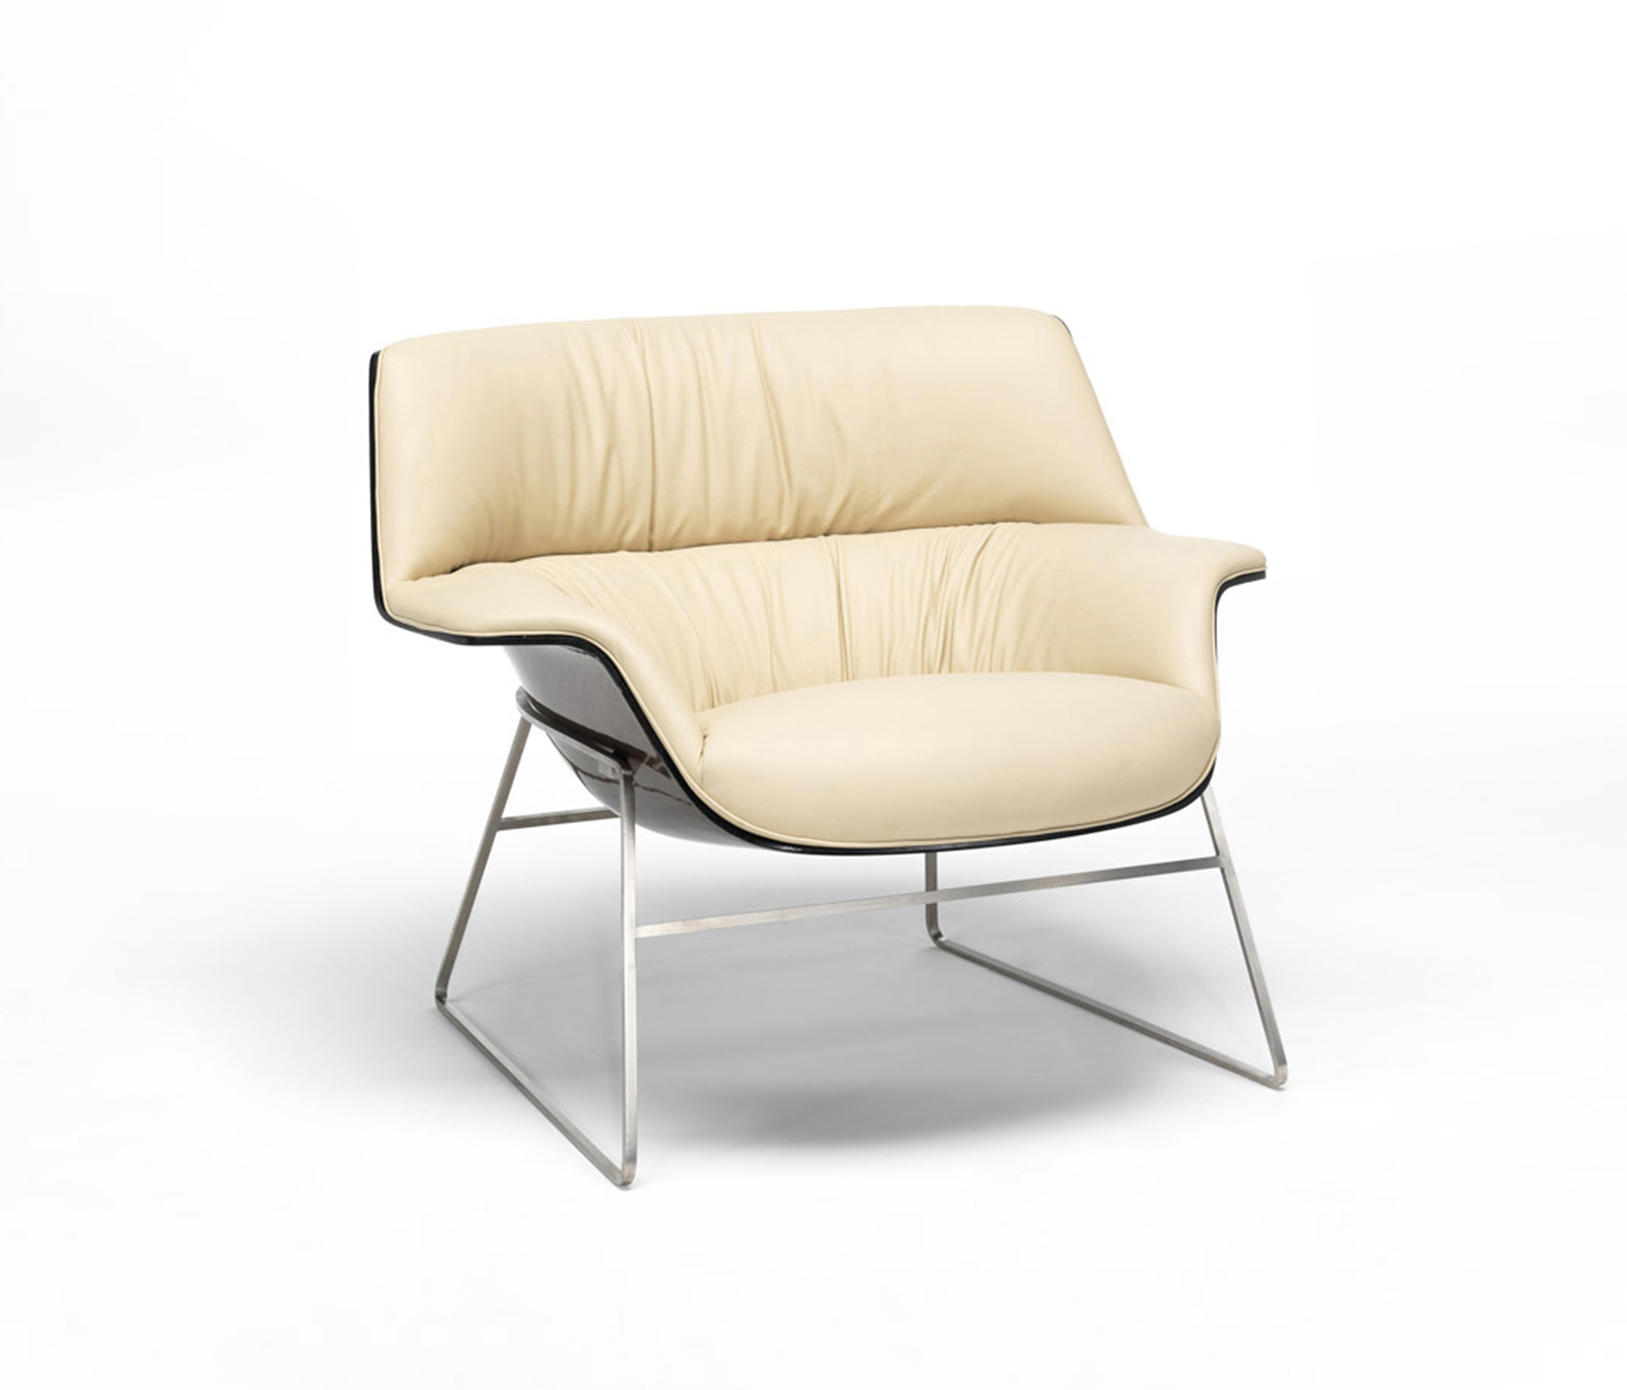 Attirant Coach By SAINTLUC S.R.L | Armchairs Coach By SAINTLUC S.R.L | Armchairs ...